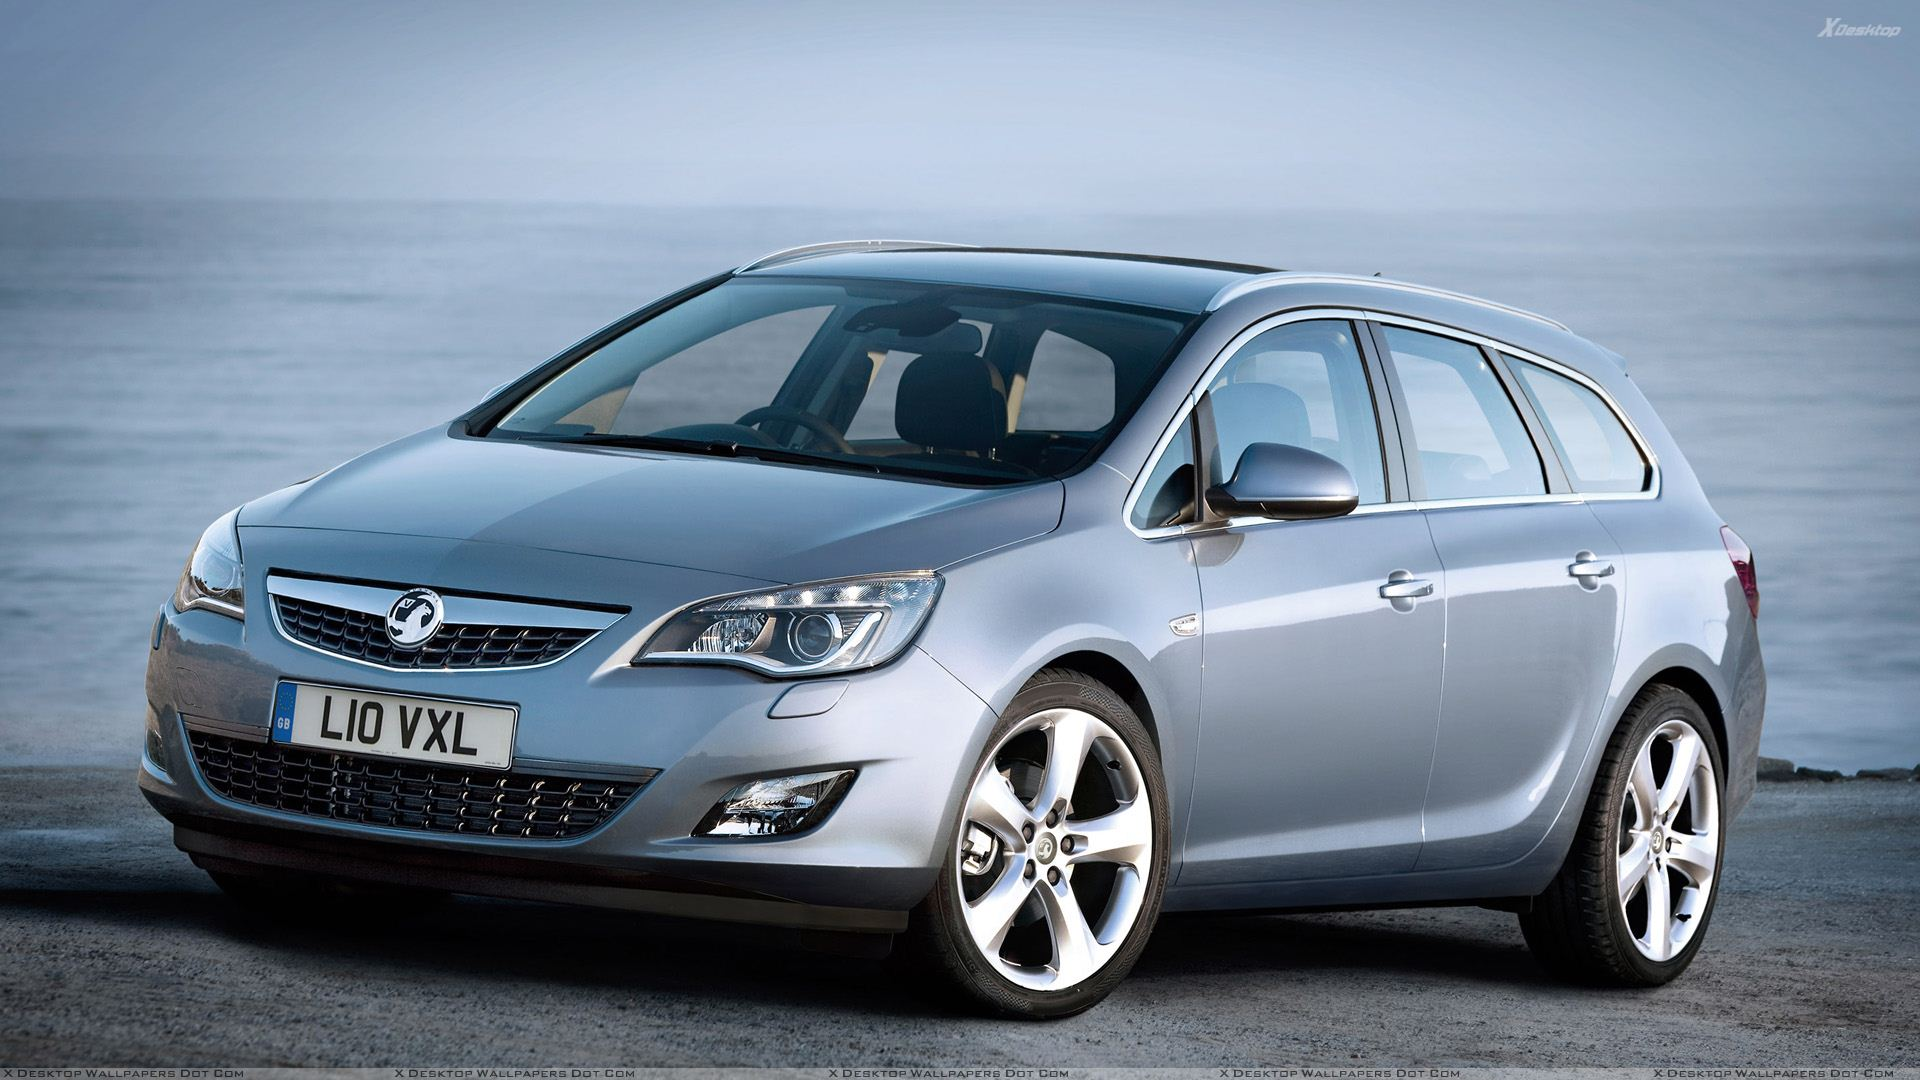 2011 vauxhall astra sports tourer front side pose near sea wallpaper. Black Bedroom Furniture Sets. Home Design Ideas